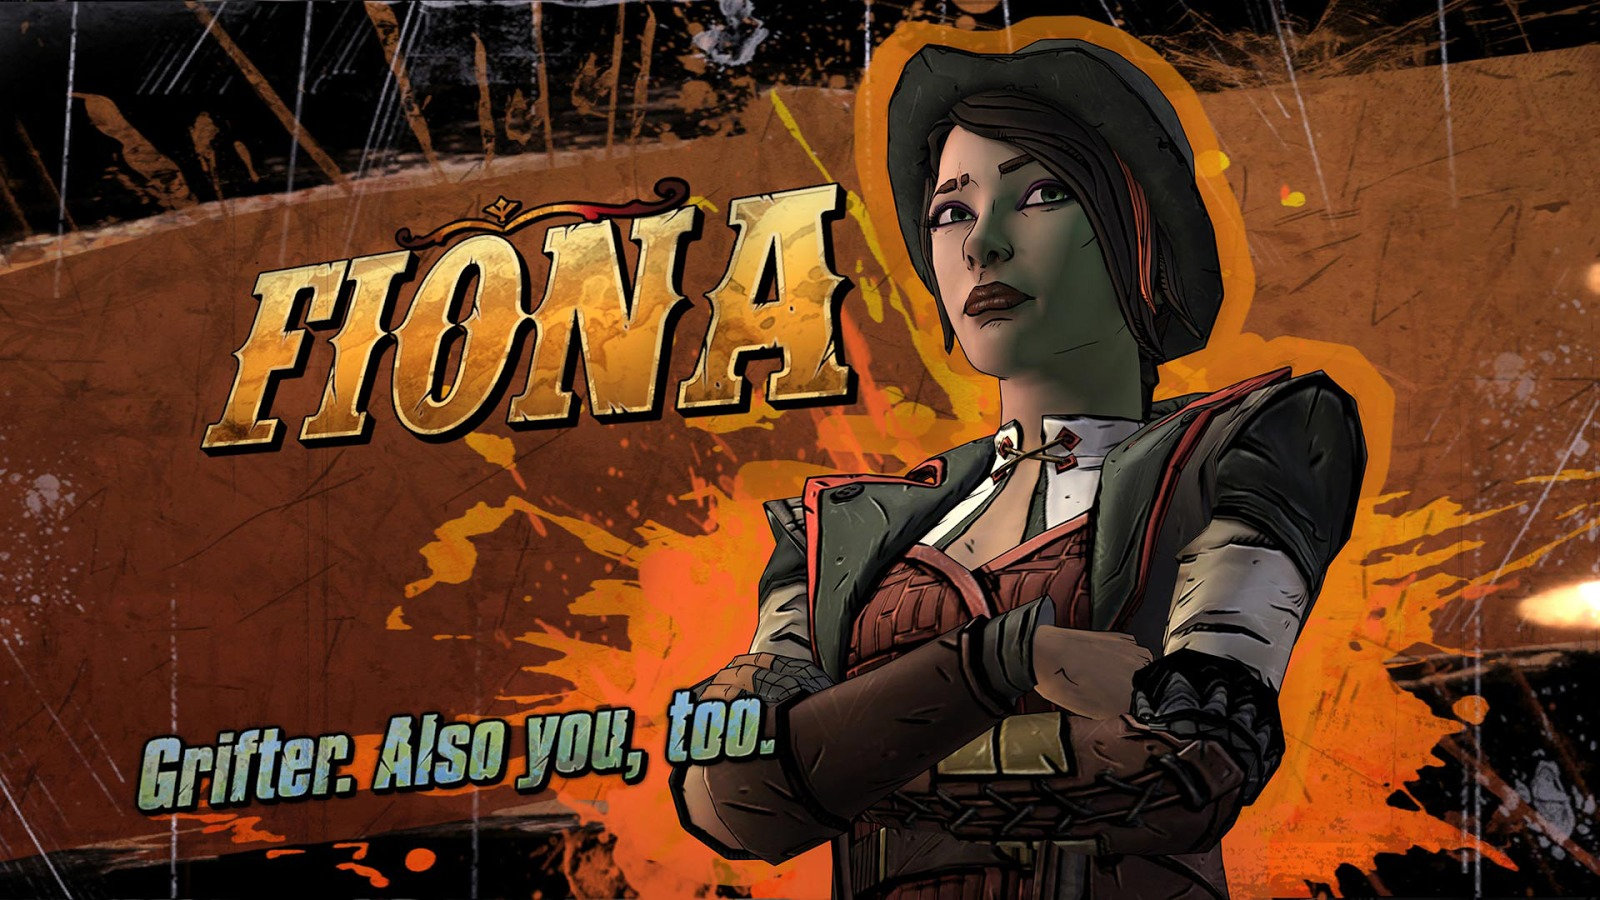 ������� ������� ���� Tales from the borderlands (����� � ������) ��������� apk ��� ����������� � �������� ���.